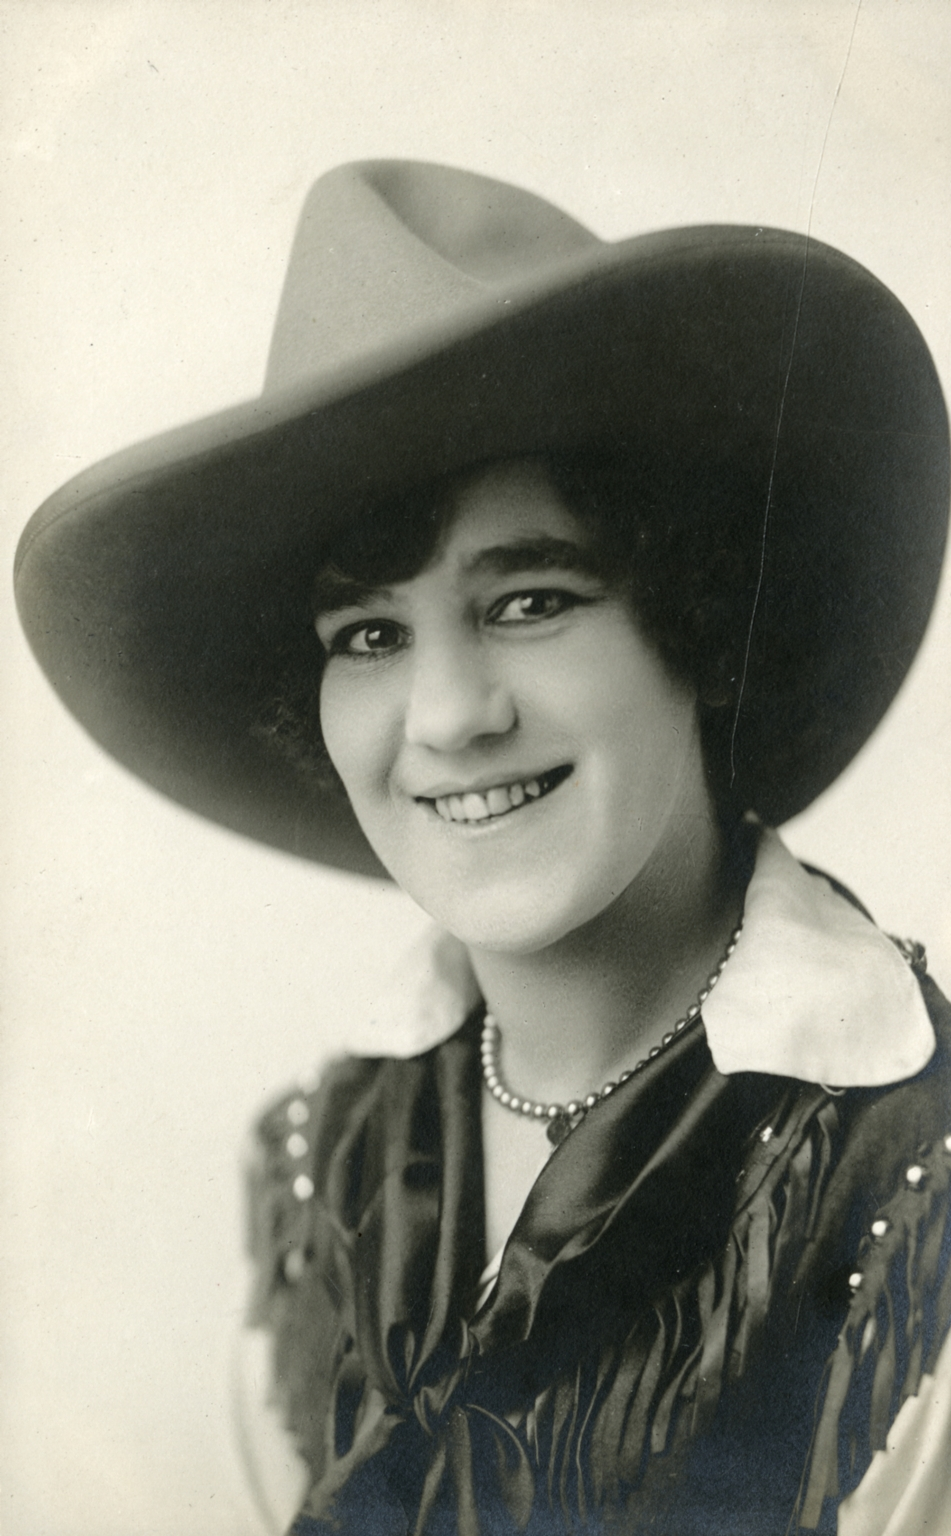 Portrait of unidentified woman rodeo performer